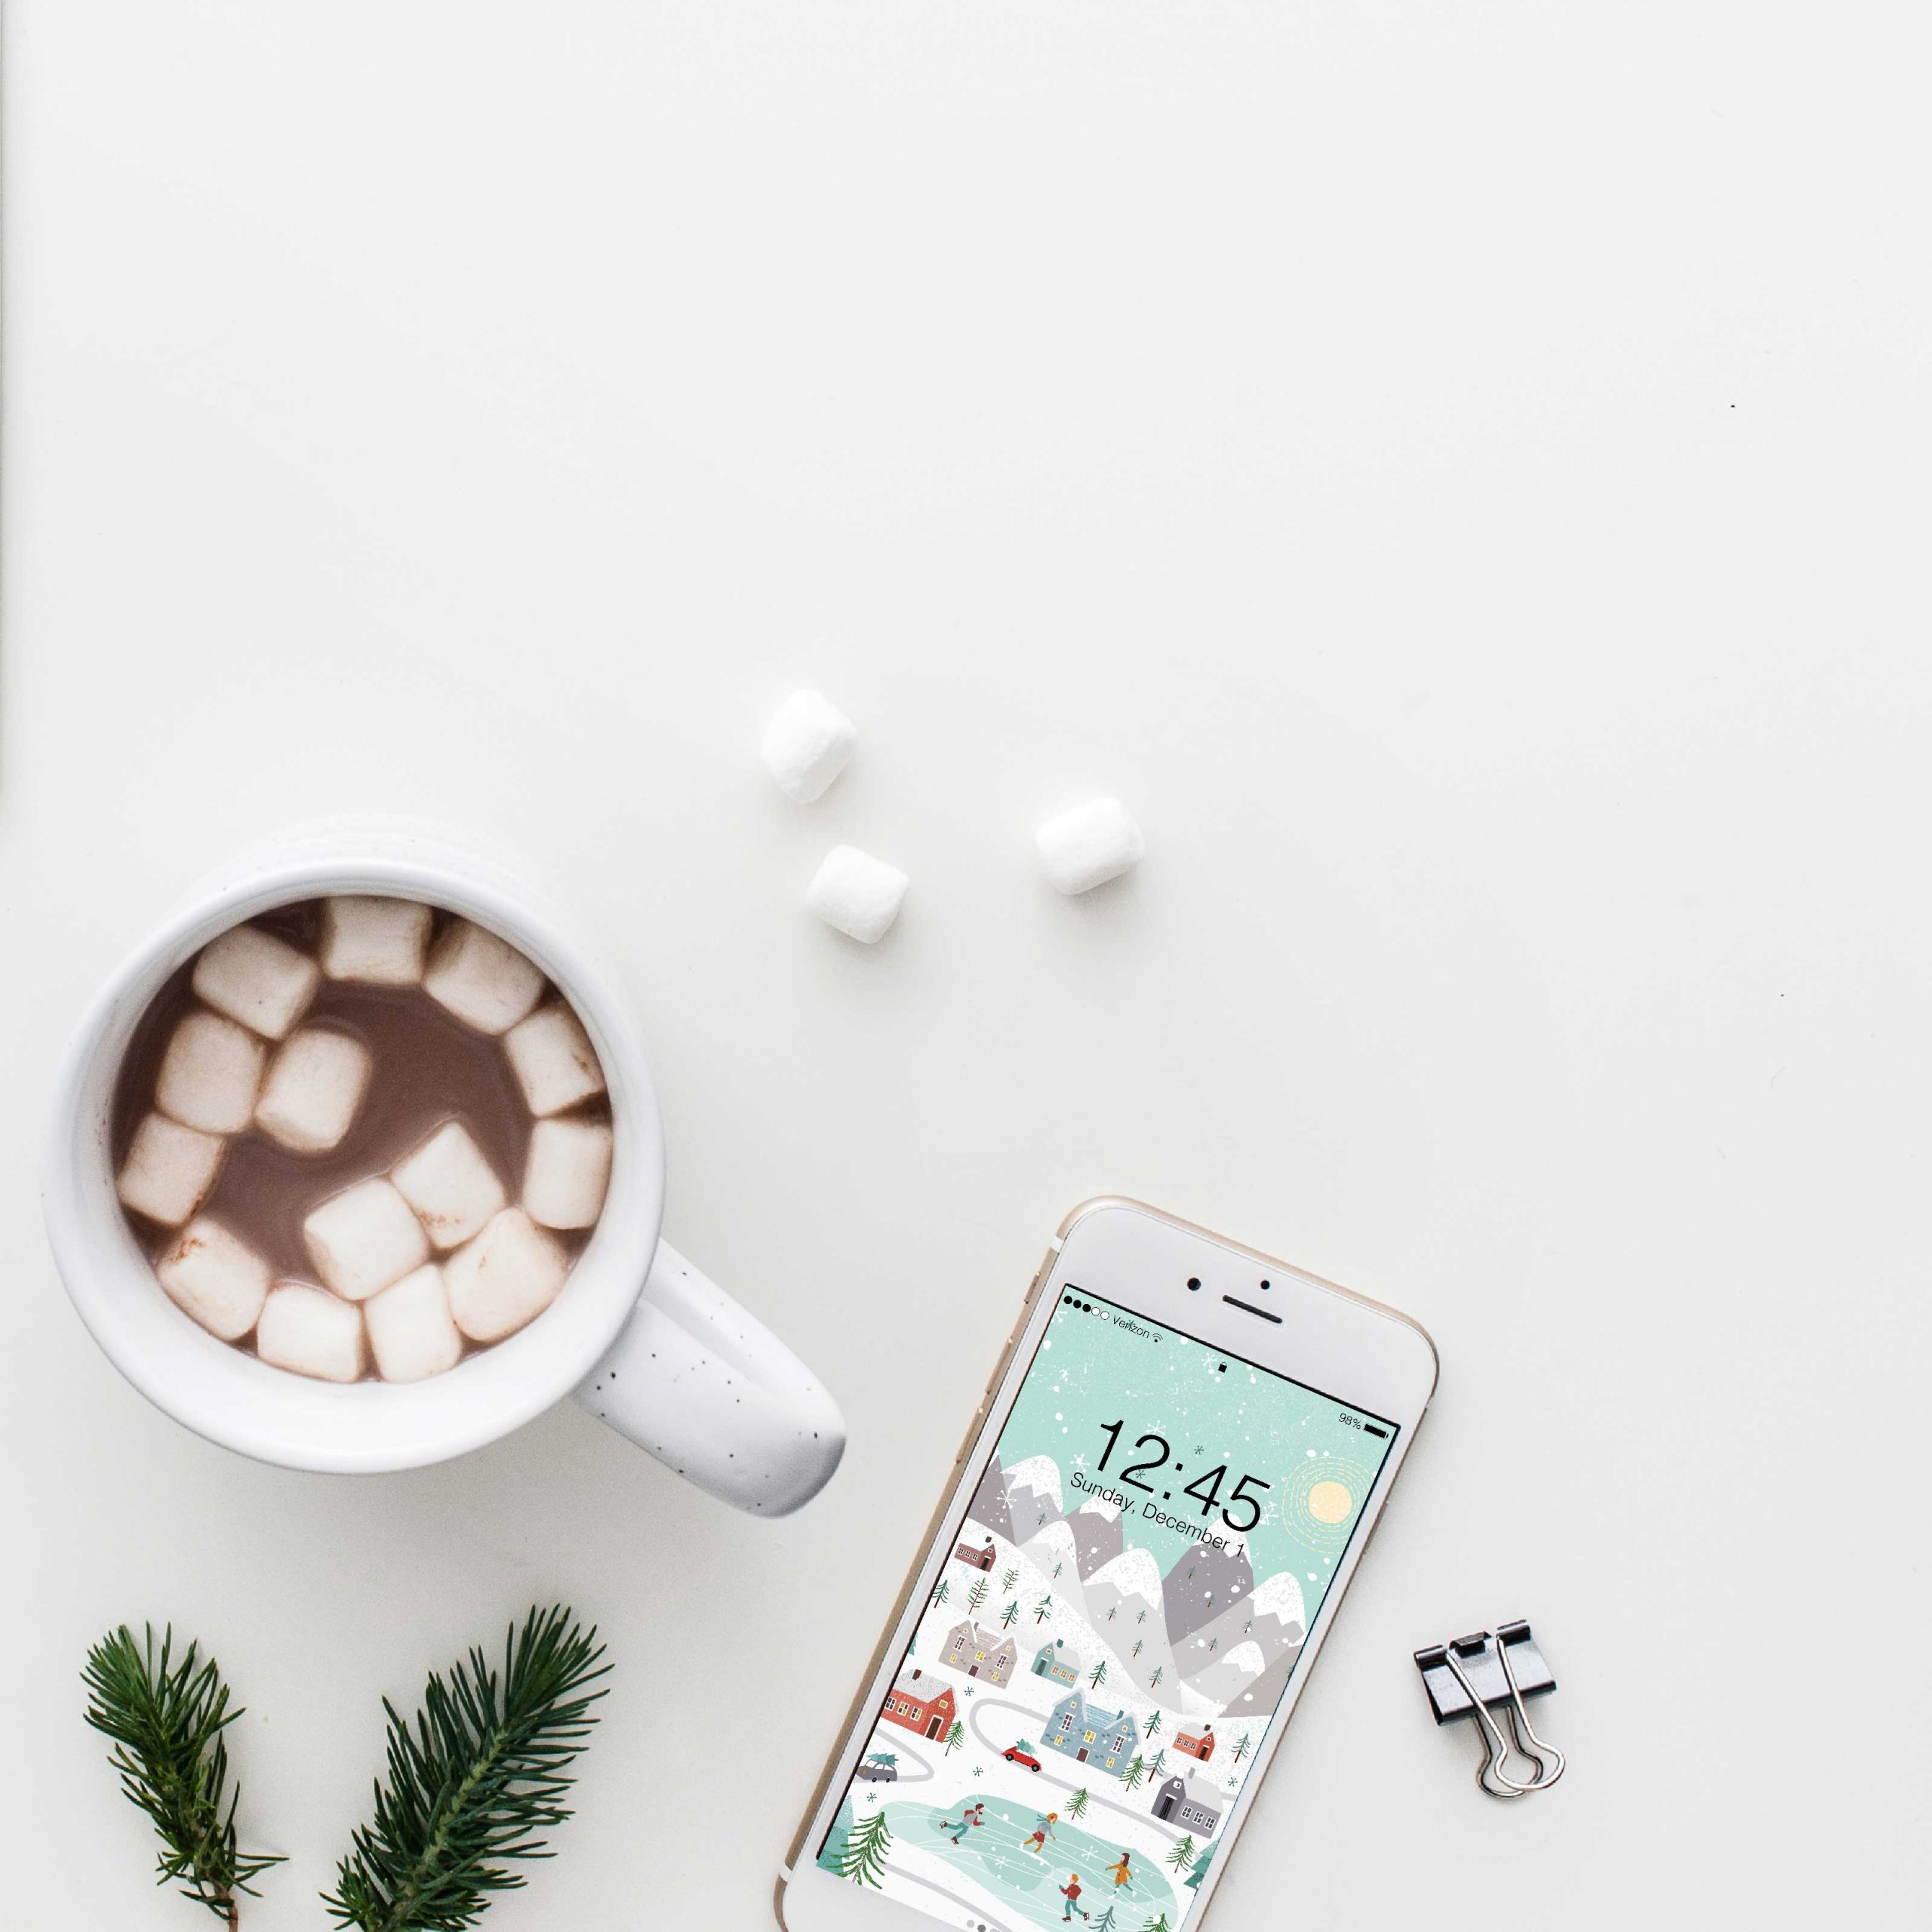 Winter Holiday Free Phone Wallpaper | Weekly Inspiration